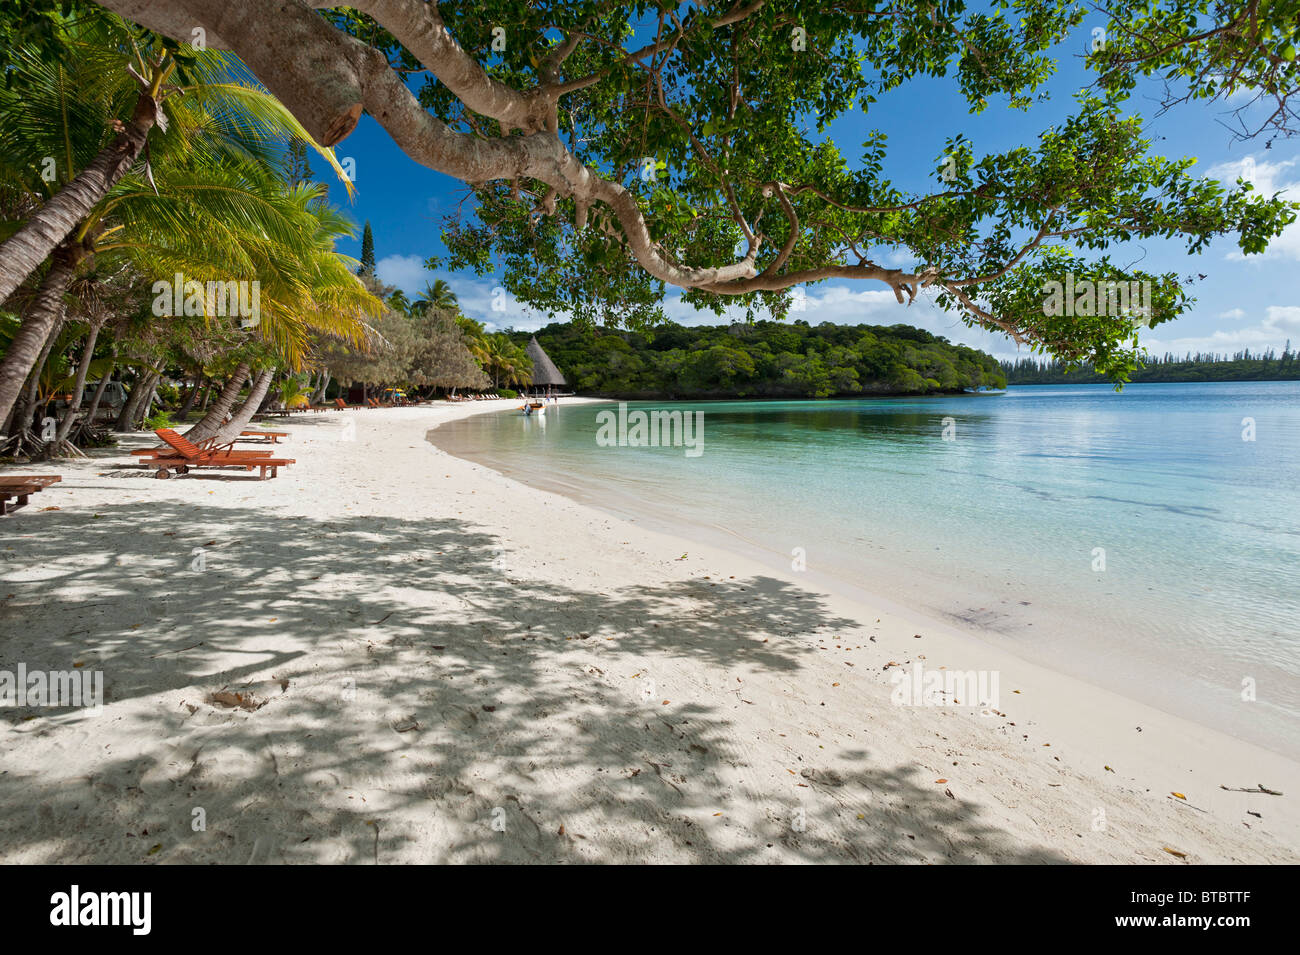 The Perfect Beach at Kanumera Bay, Isle of Pines, New Caledonia, South Pacific - Stock Image